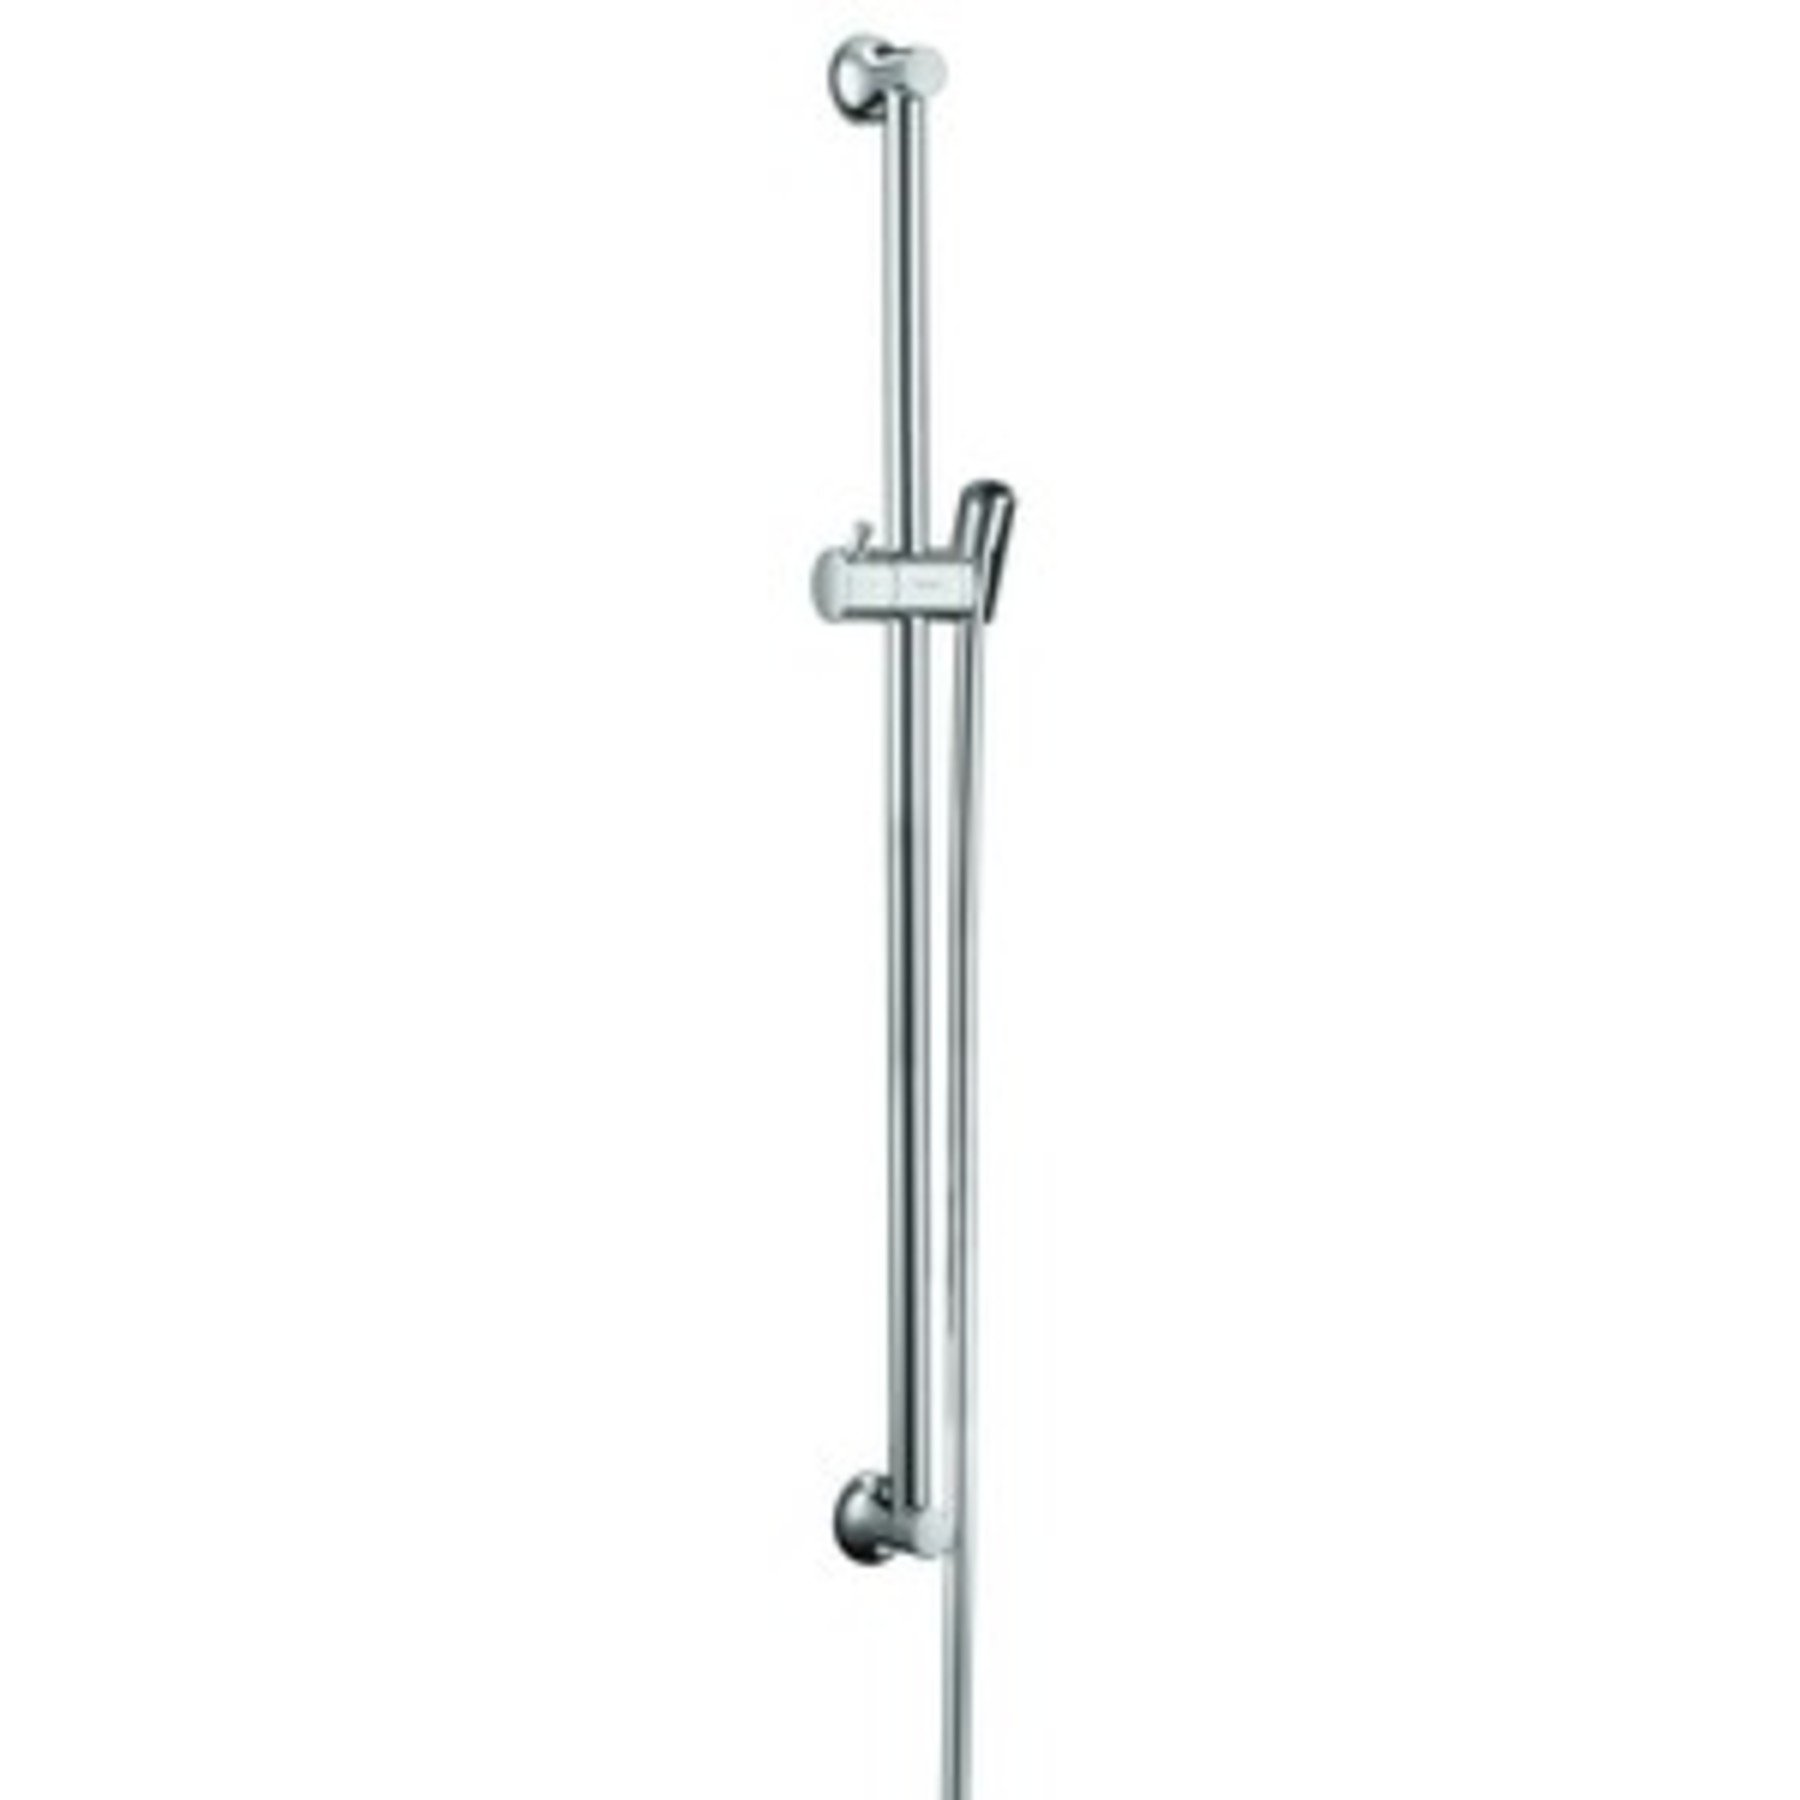 Grohe Rainshower rozet v showerset